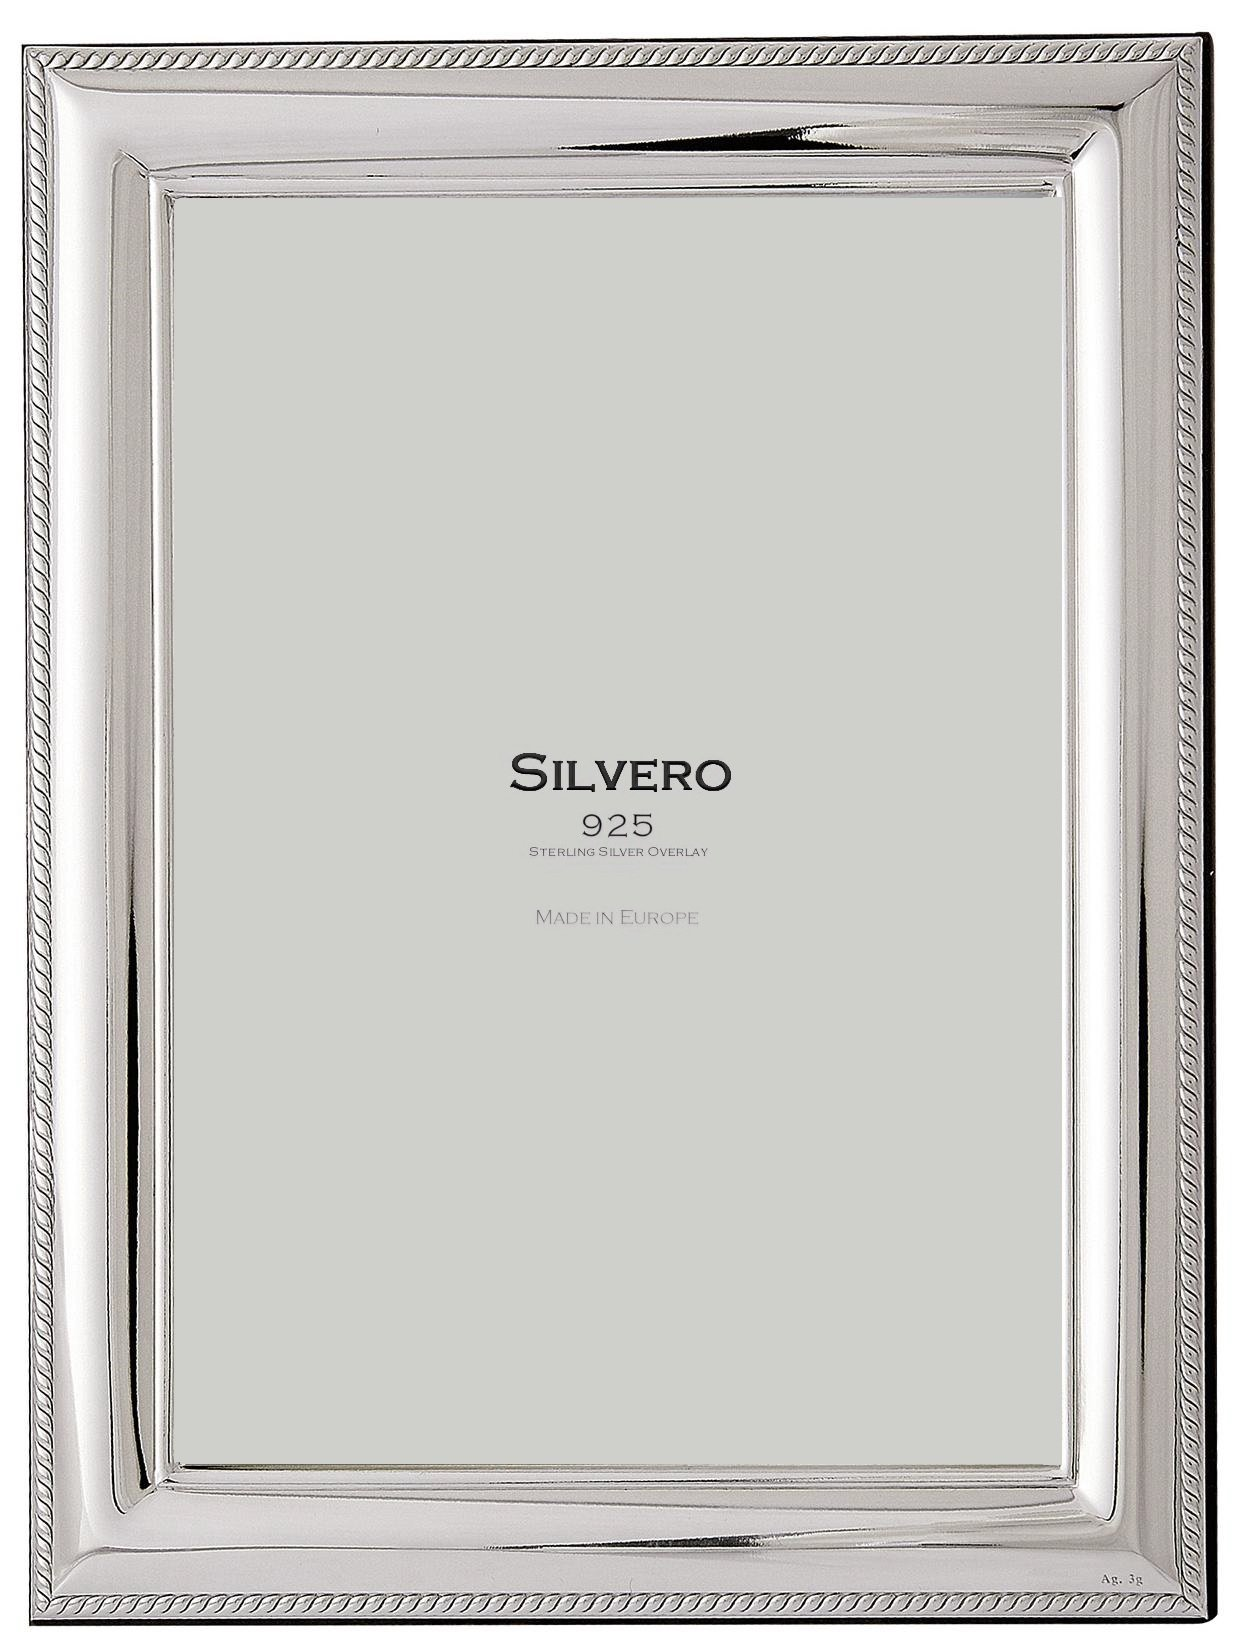 SILVERO 413W79 .925 Sterling Silver Overlay Cord 8x10 Frame